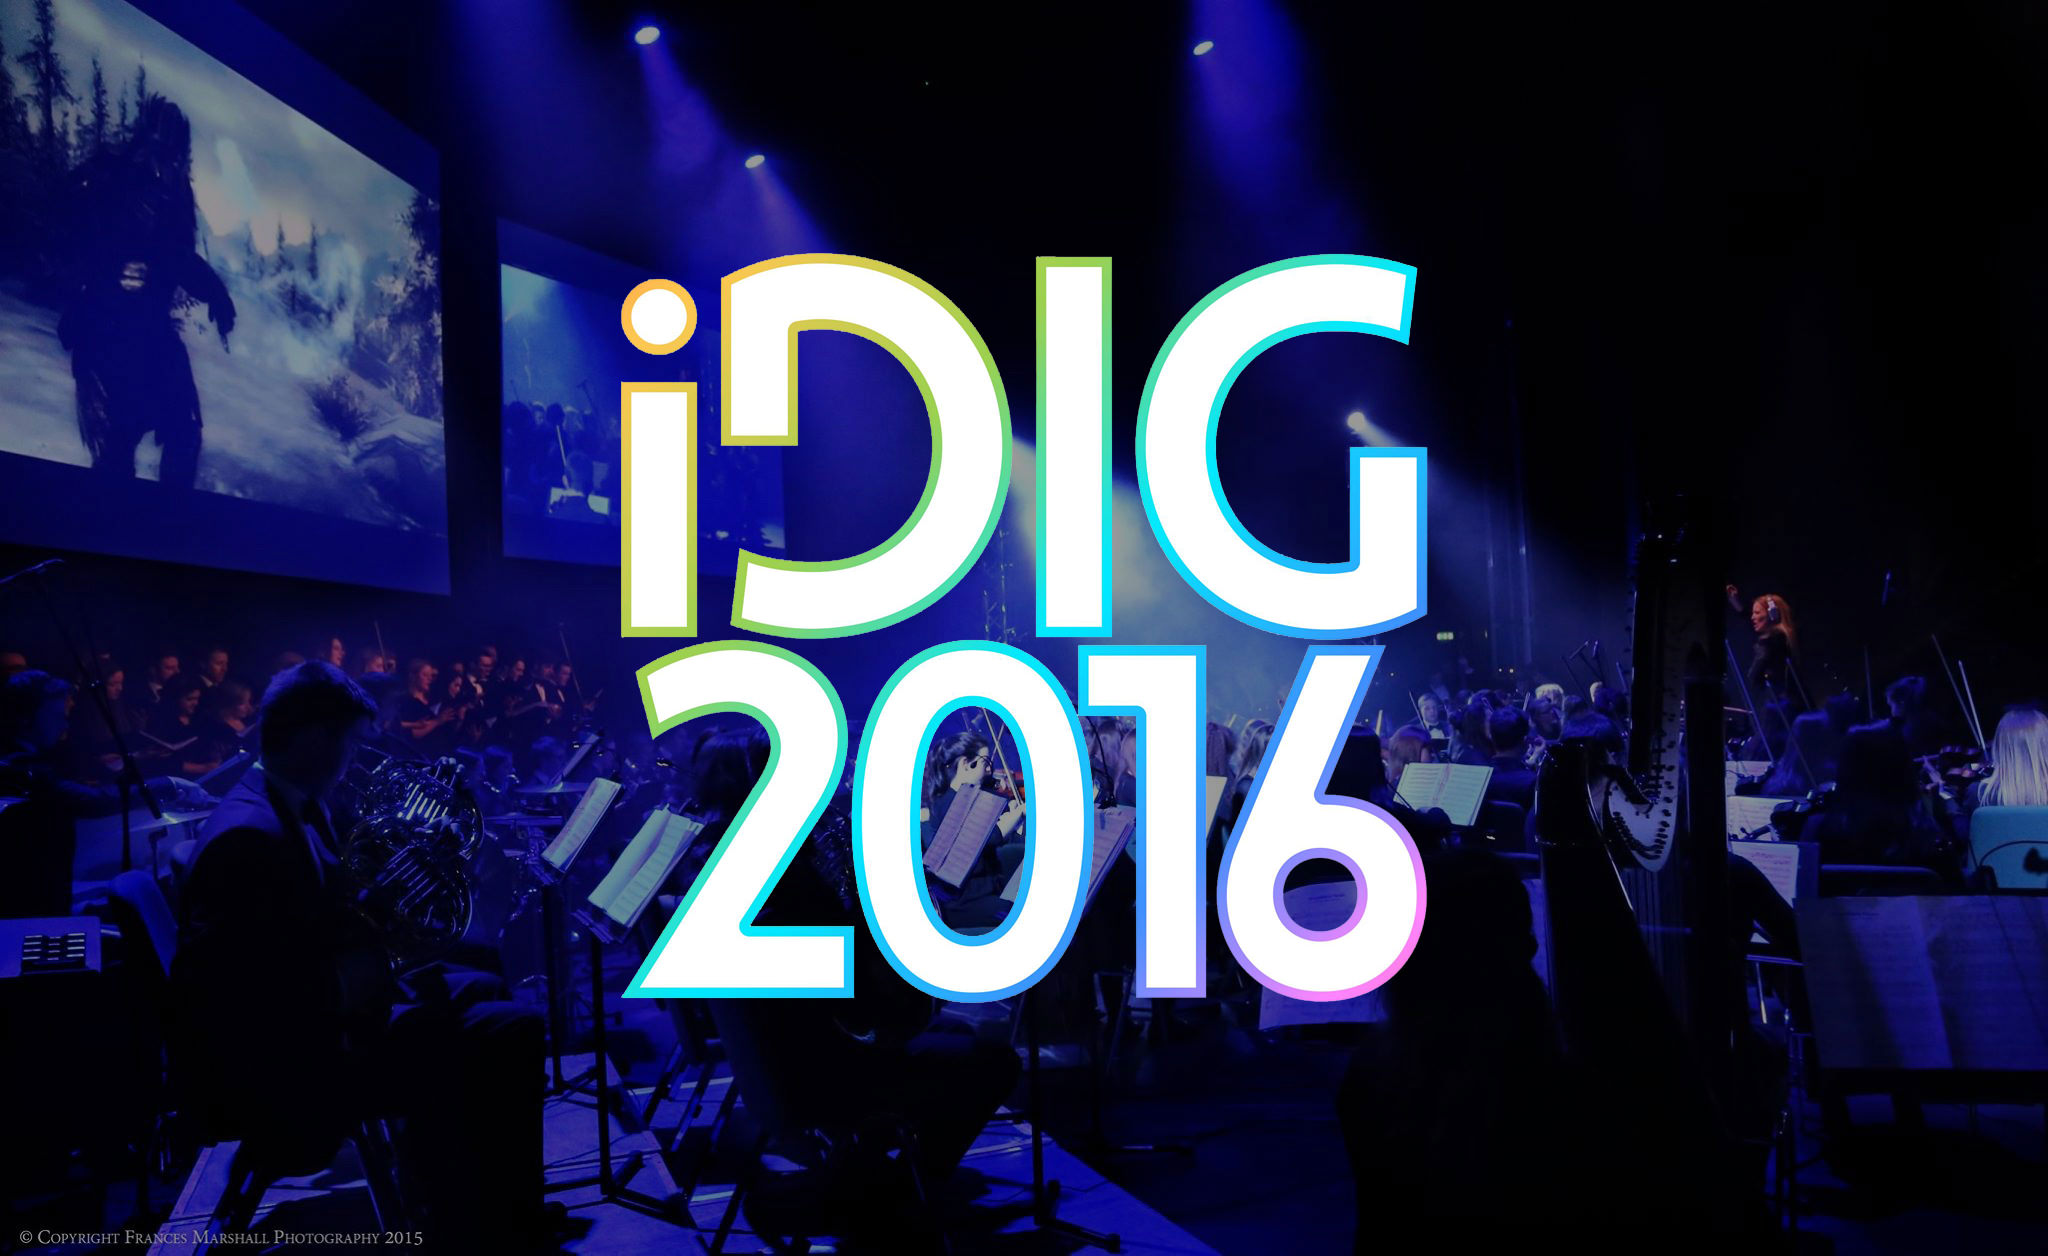 Win a pair of tickets to iDig Music Festival 2016!